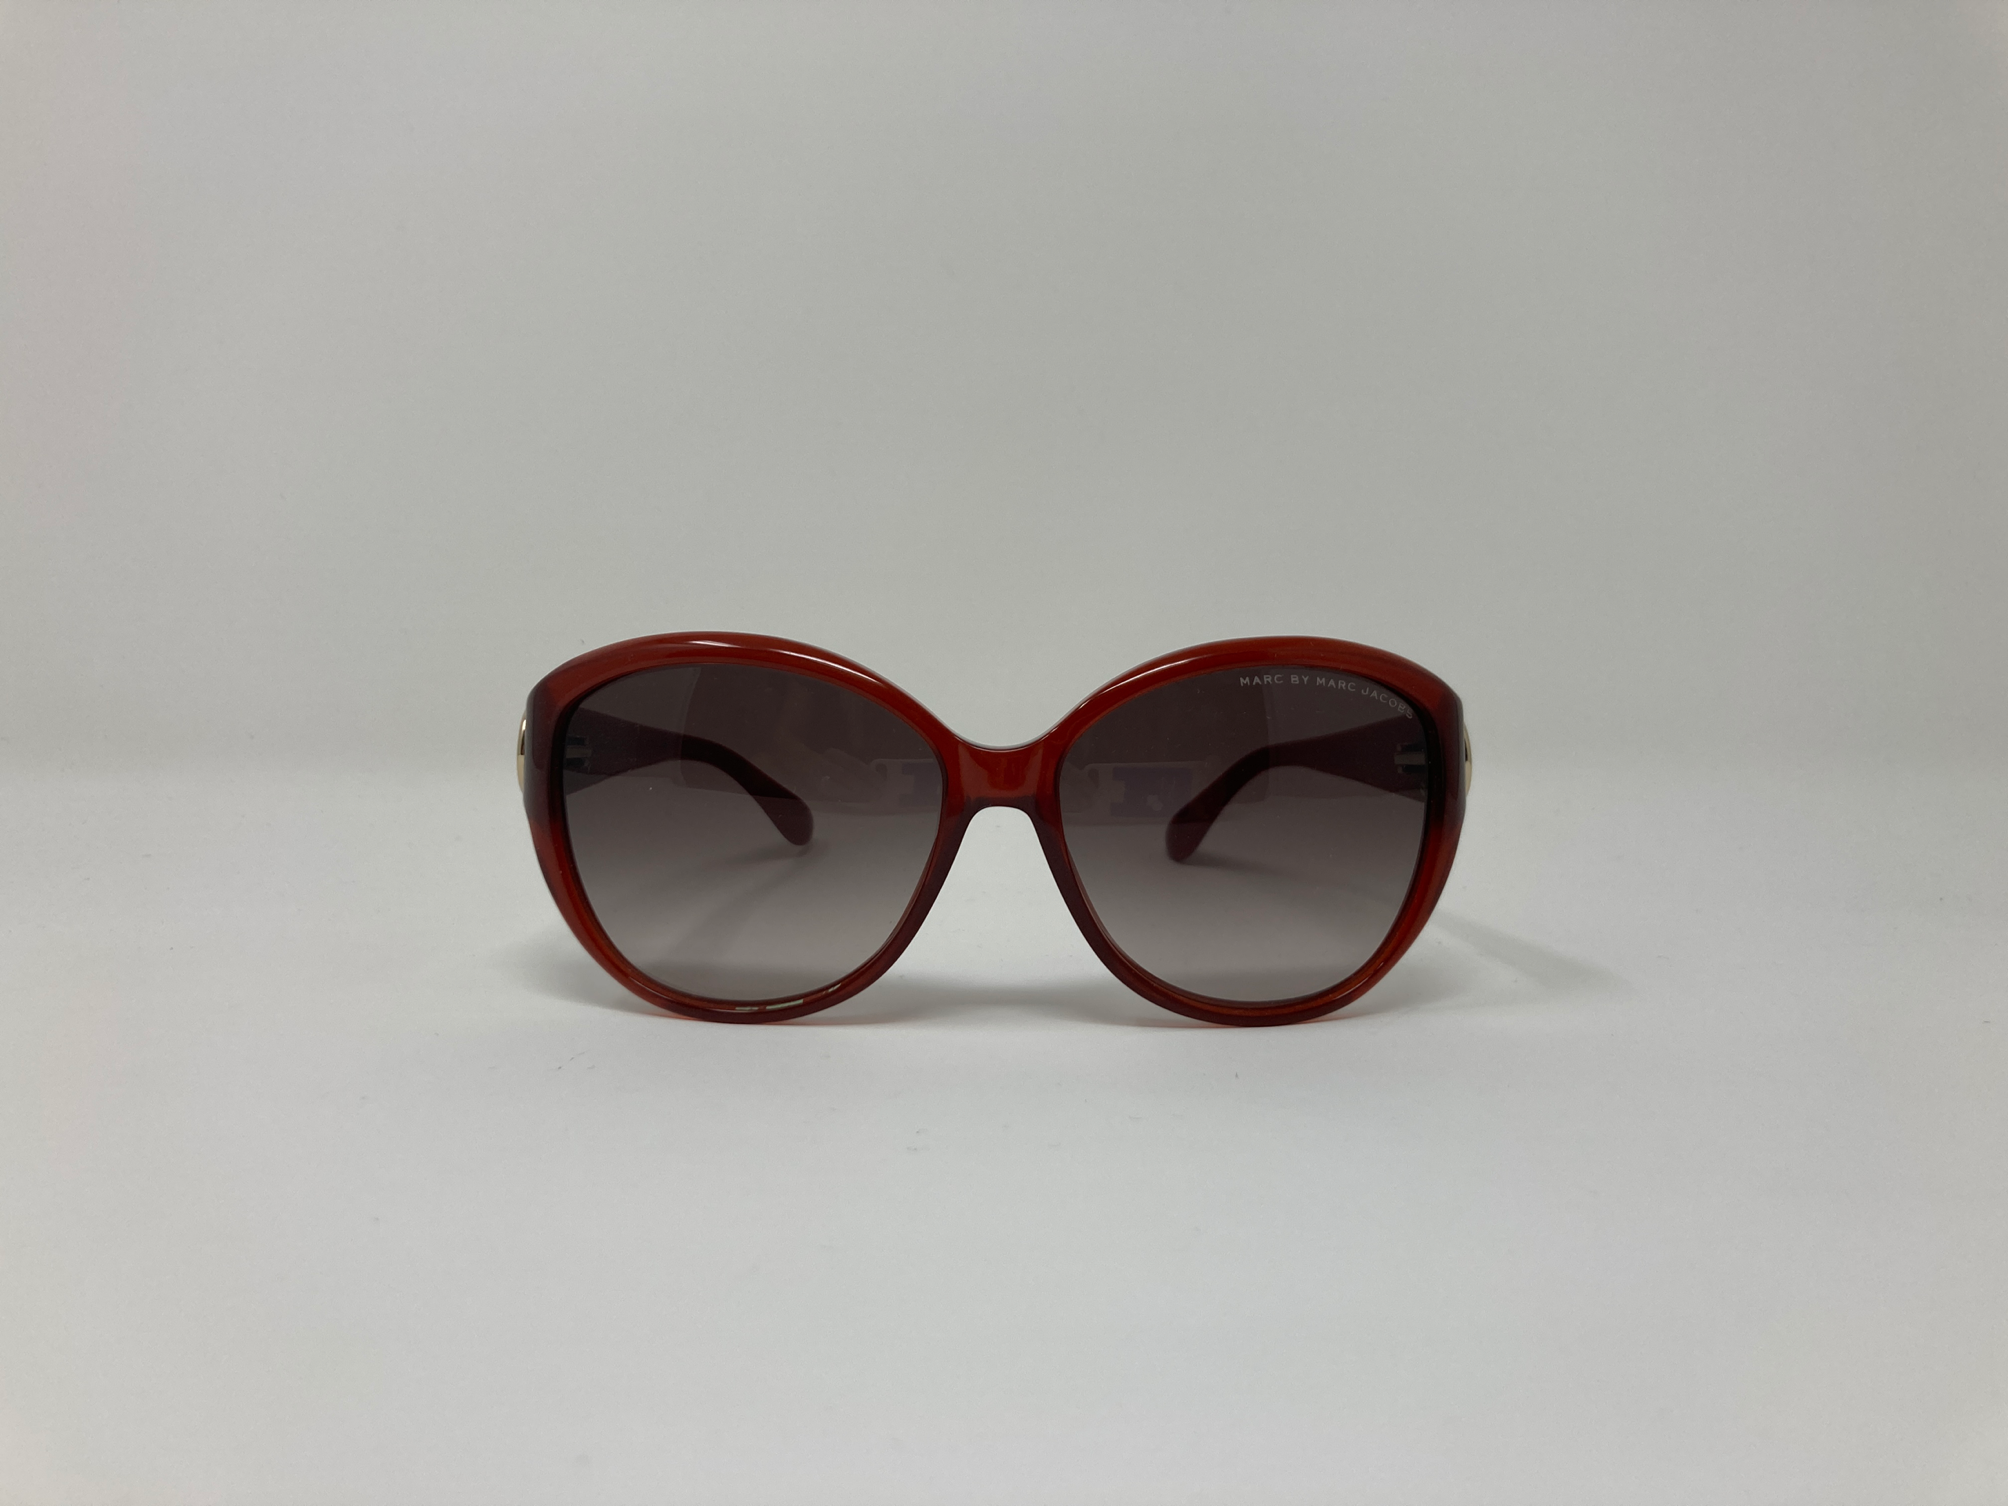 Marc Jacobs MMJ 384/S Unisex sunglasses